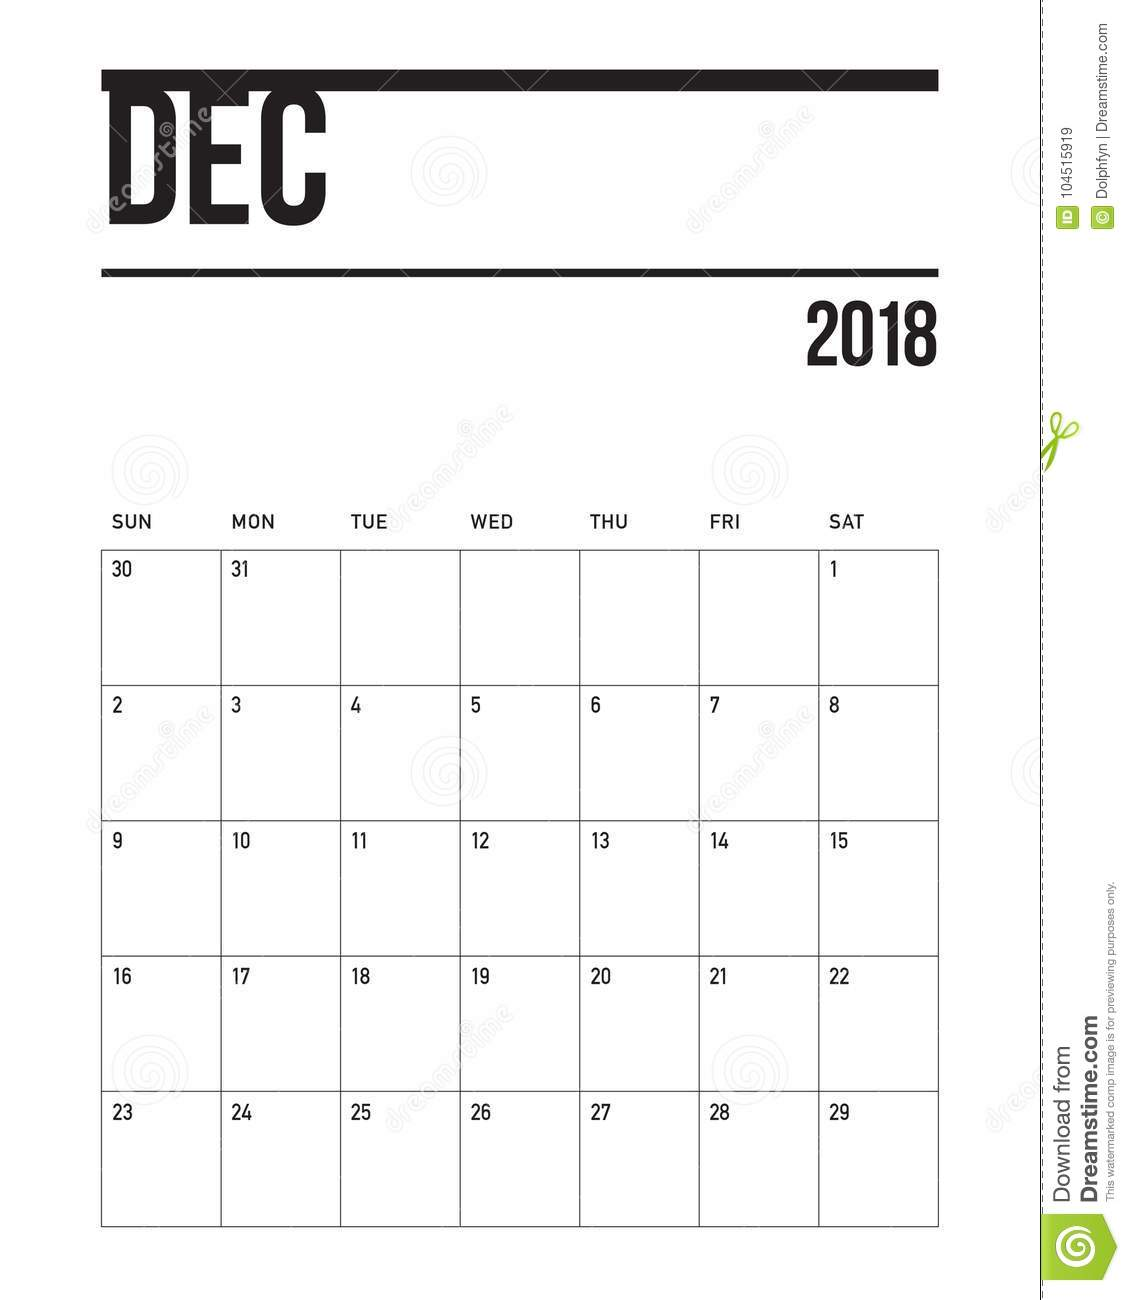 December 2018 Planner Calendar Vector Illustration Stock